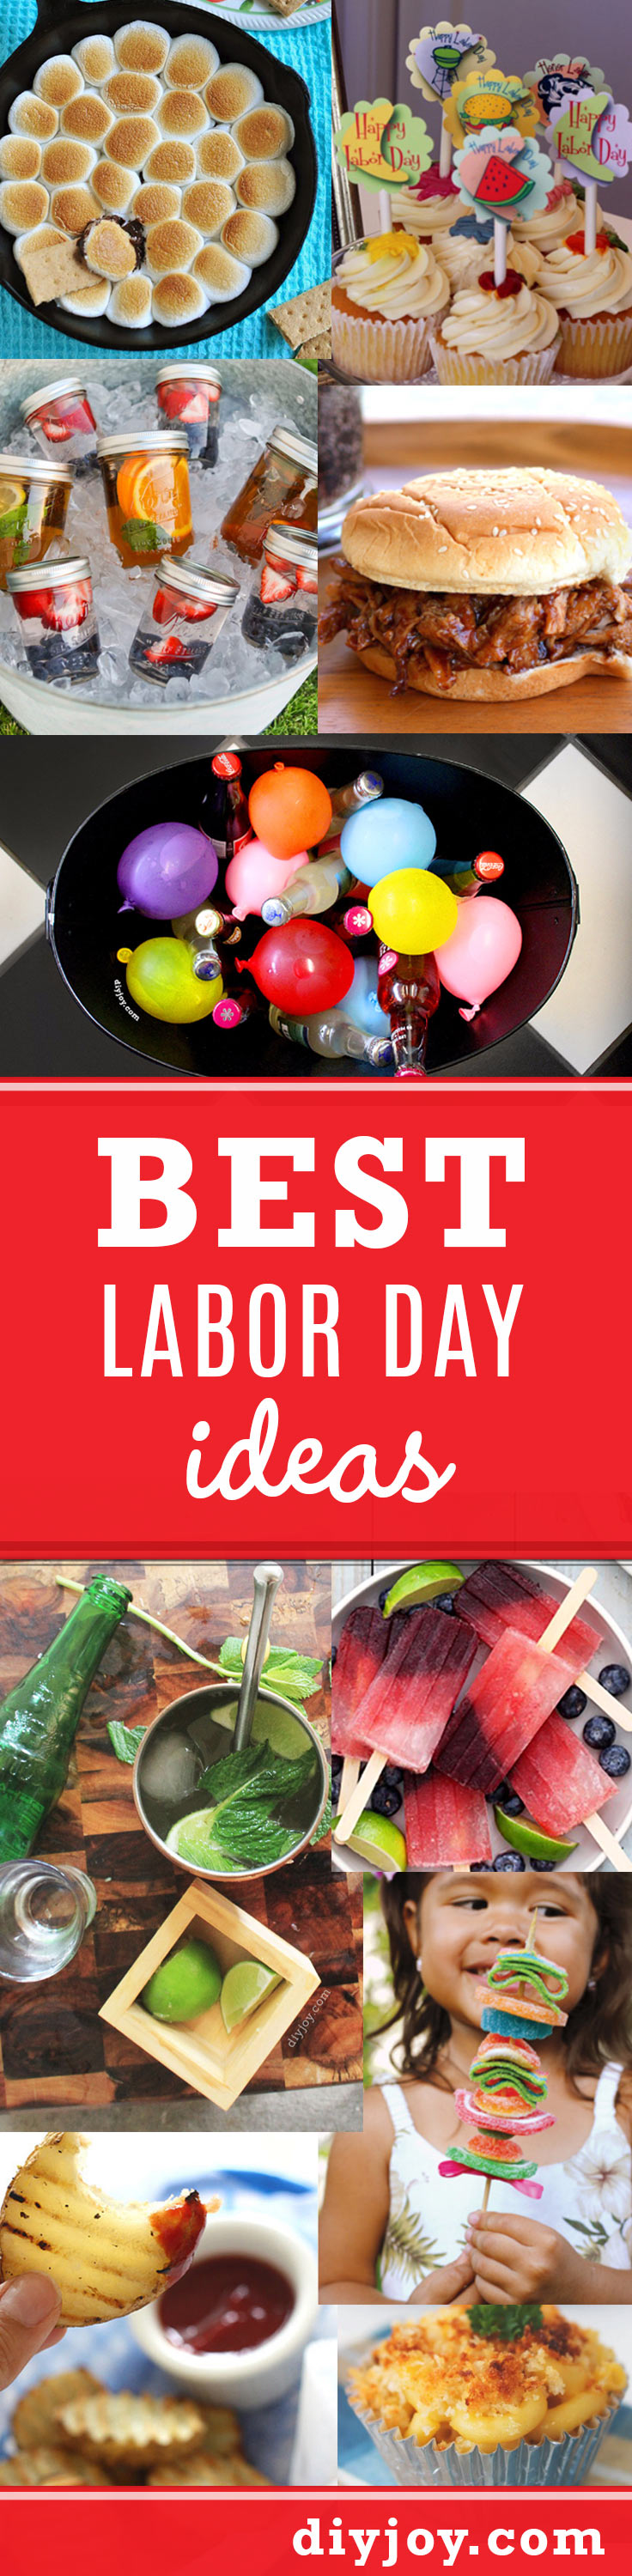 Best Labor Day Ideas for Party Decor Food and Drinks | DIY Party Planning for & Quick u0026 Easy DIY Ideas to Make Your Labor Day Celebration Special